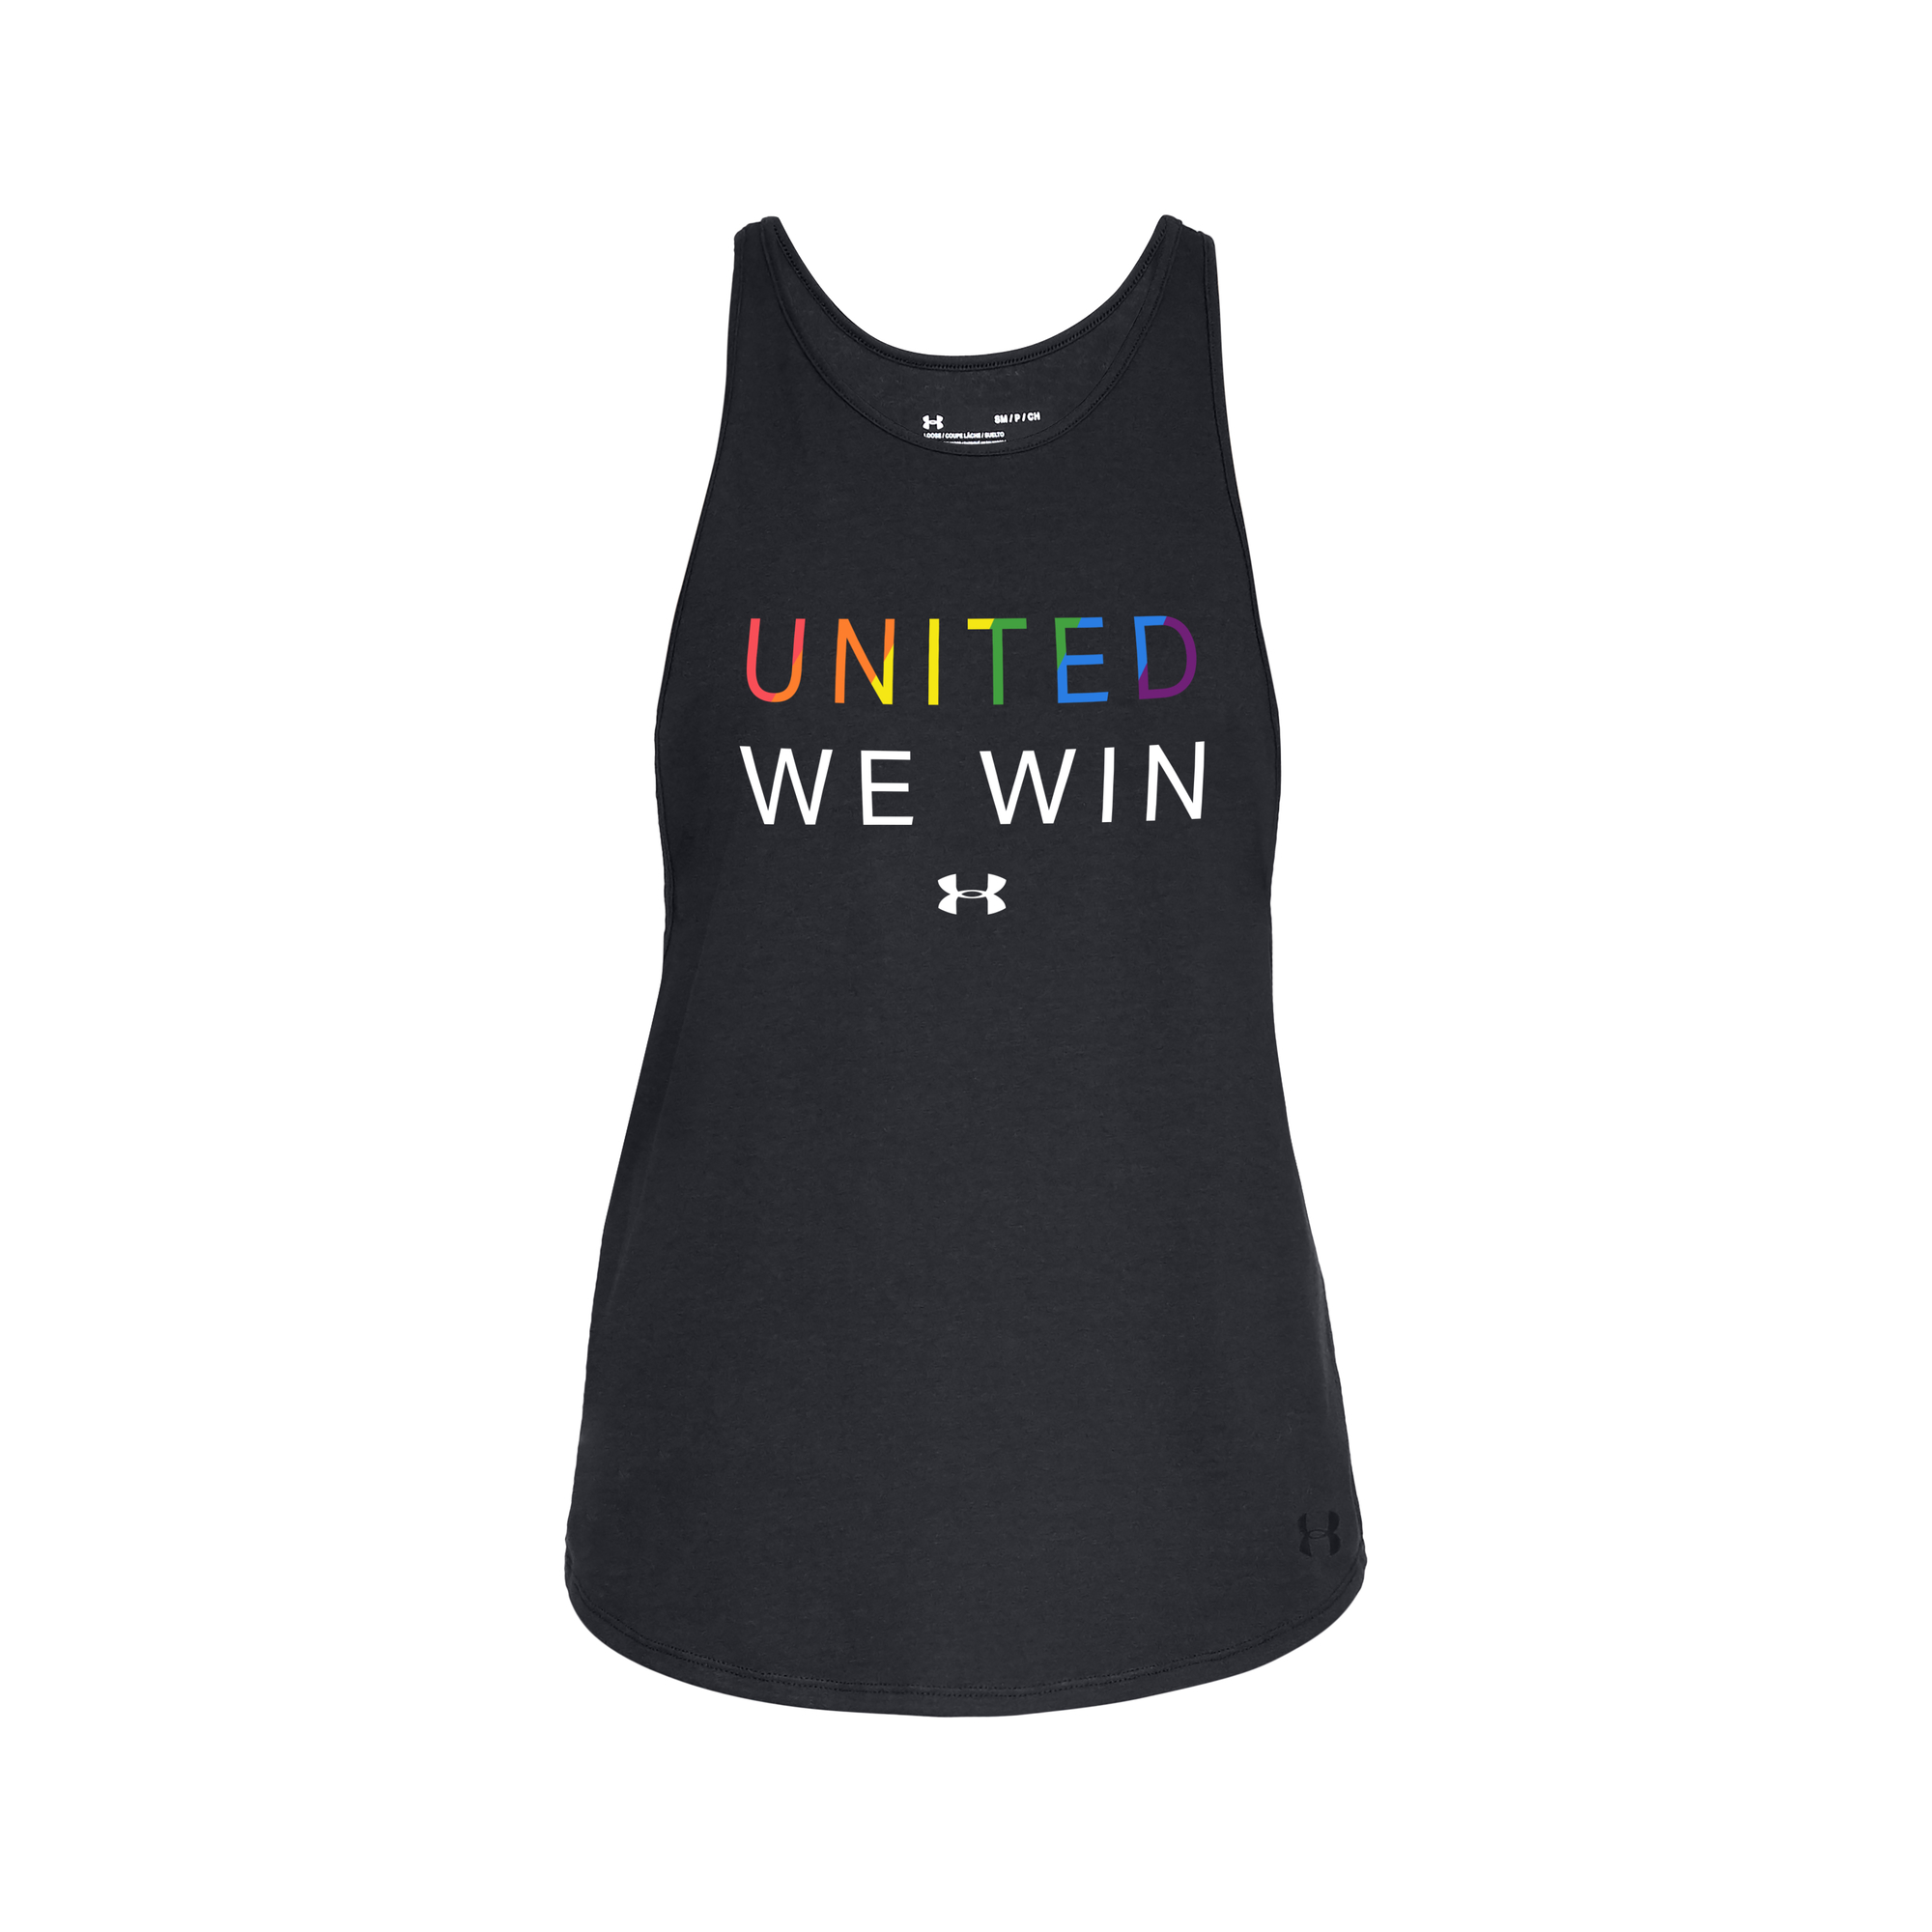 Under Armour pride collection tank